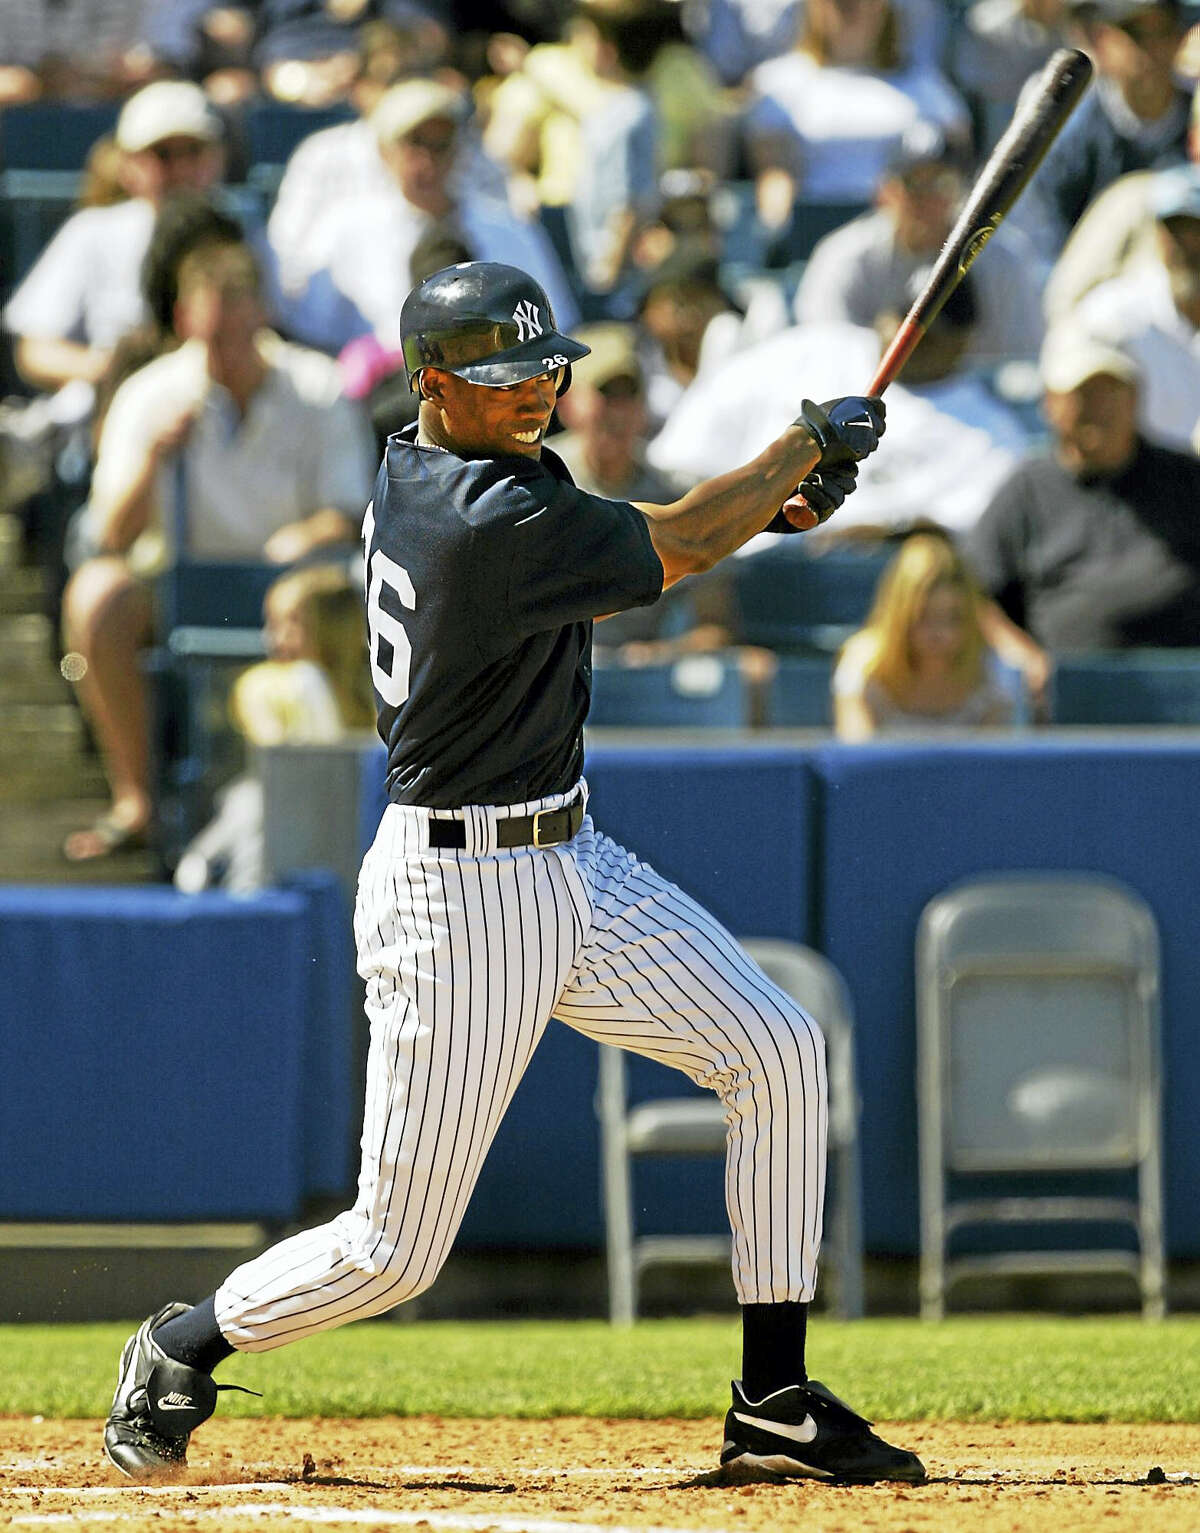 New York Yankees' Doug Glanville swings through during one of his four at bats against the Philadelphia Phillies in 2005 at Legends Field in Tampa, Fla. Connecticut Gov. Dannel P. Malloy appointed Glanville to serve on the Connecticut commission responsible for enforcing professional standards for certifying police officers.